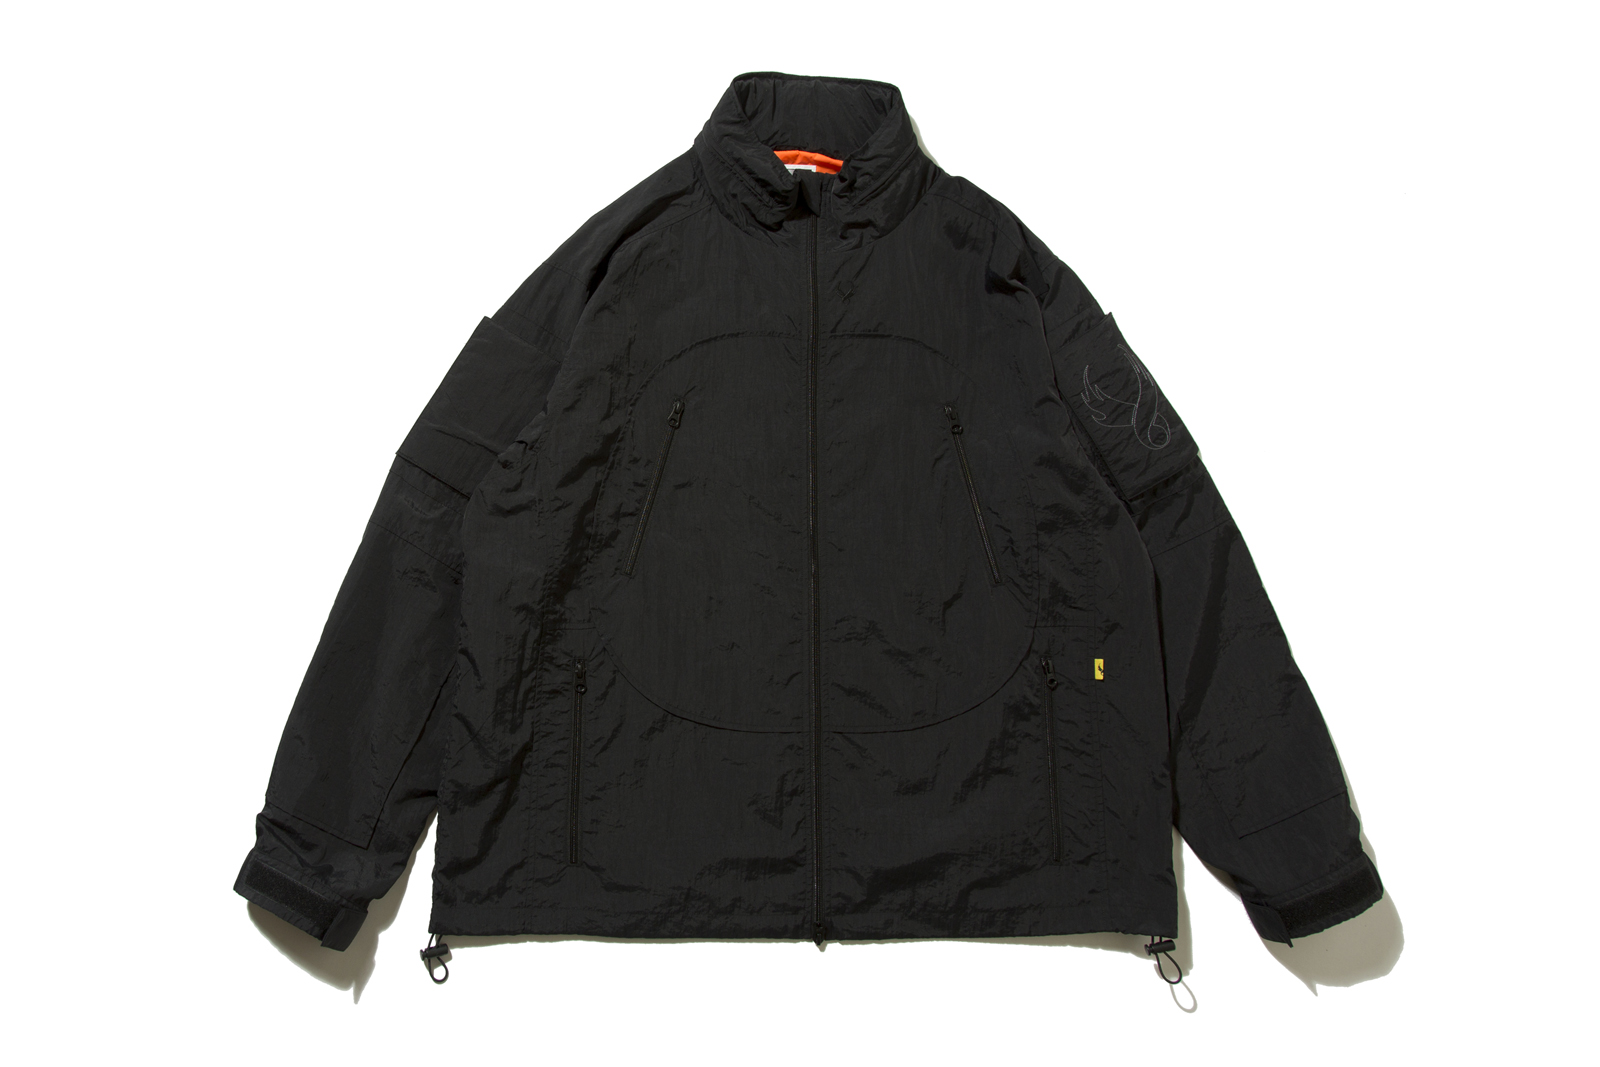 r-x-level5-jacket-black_p2